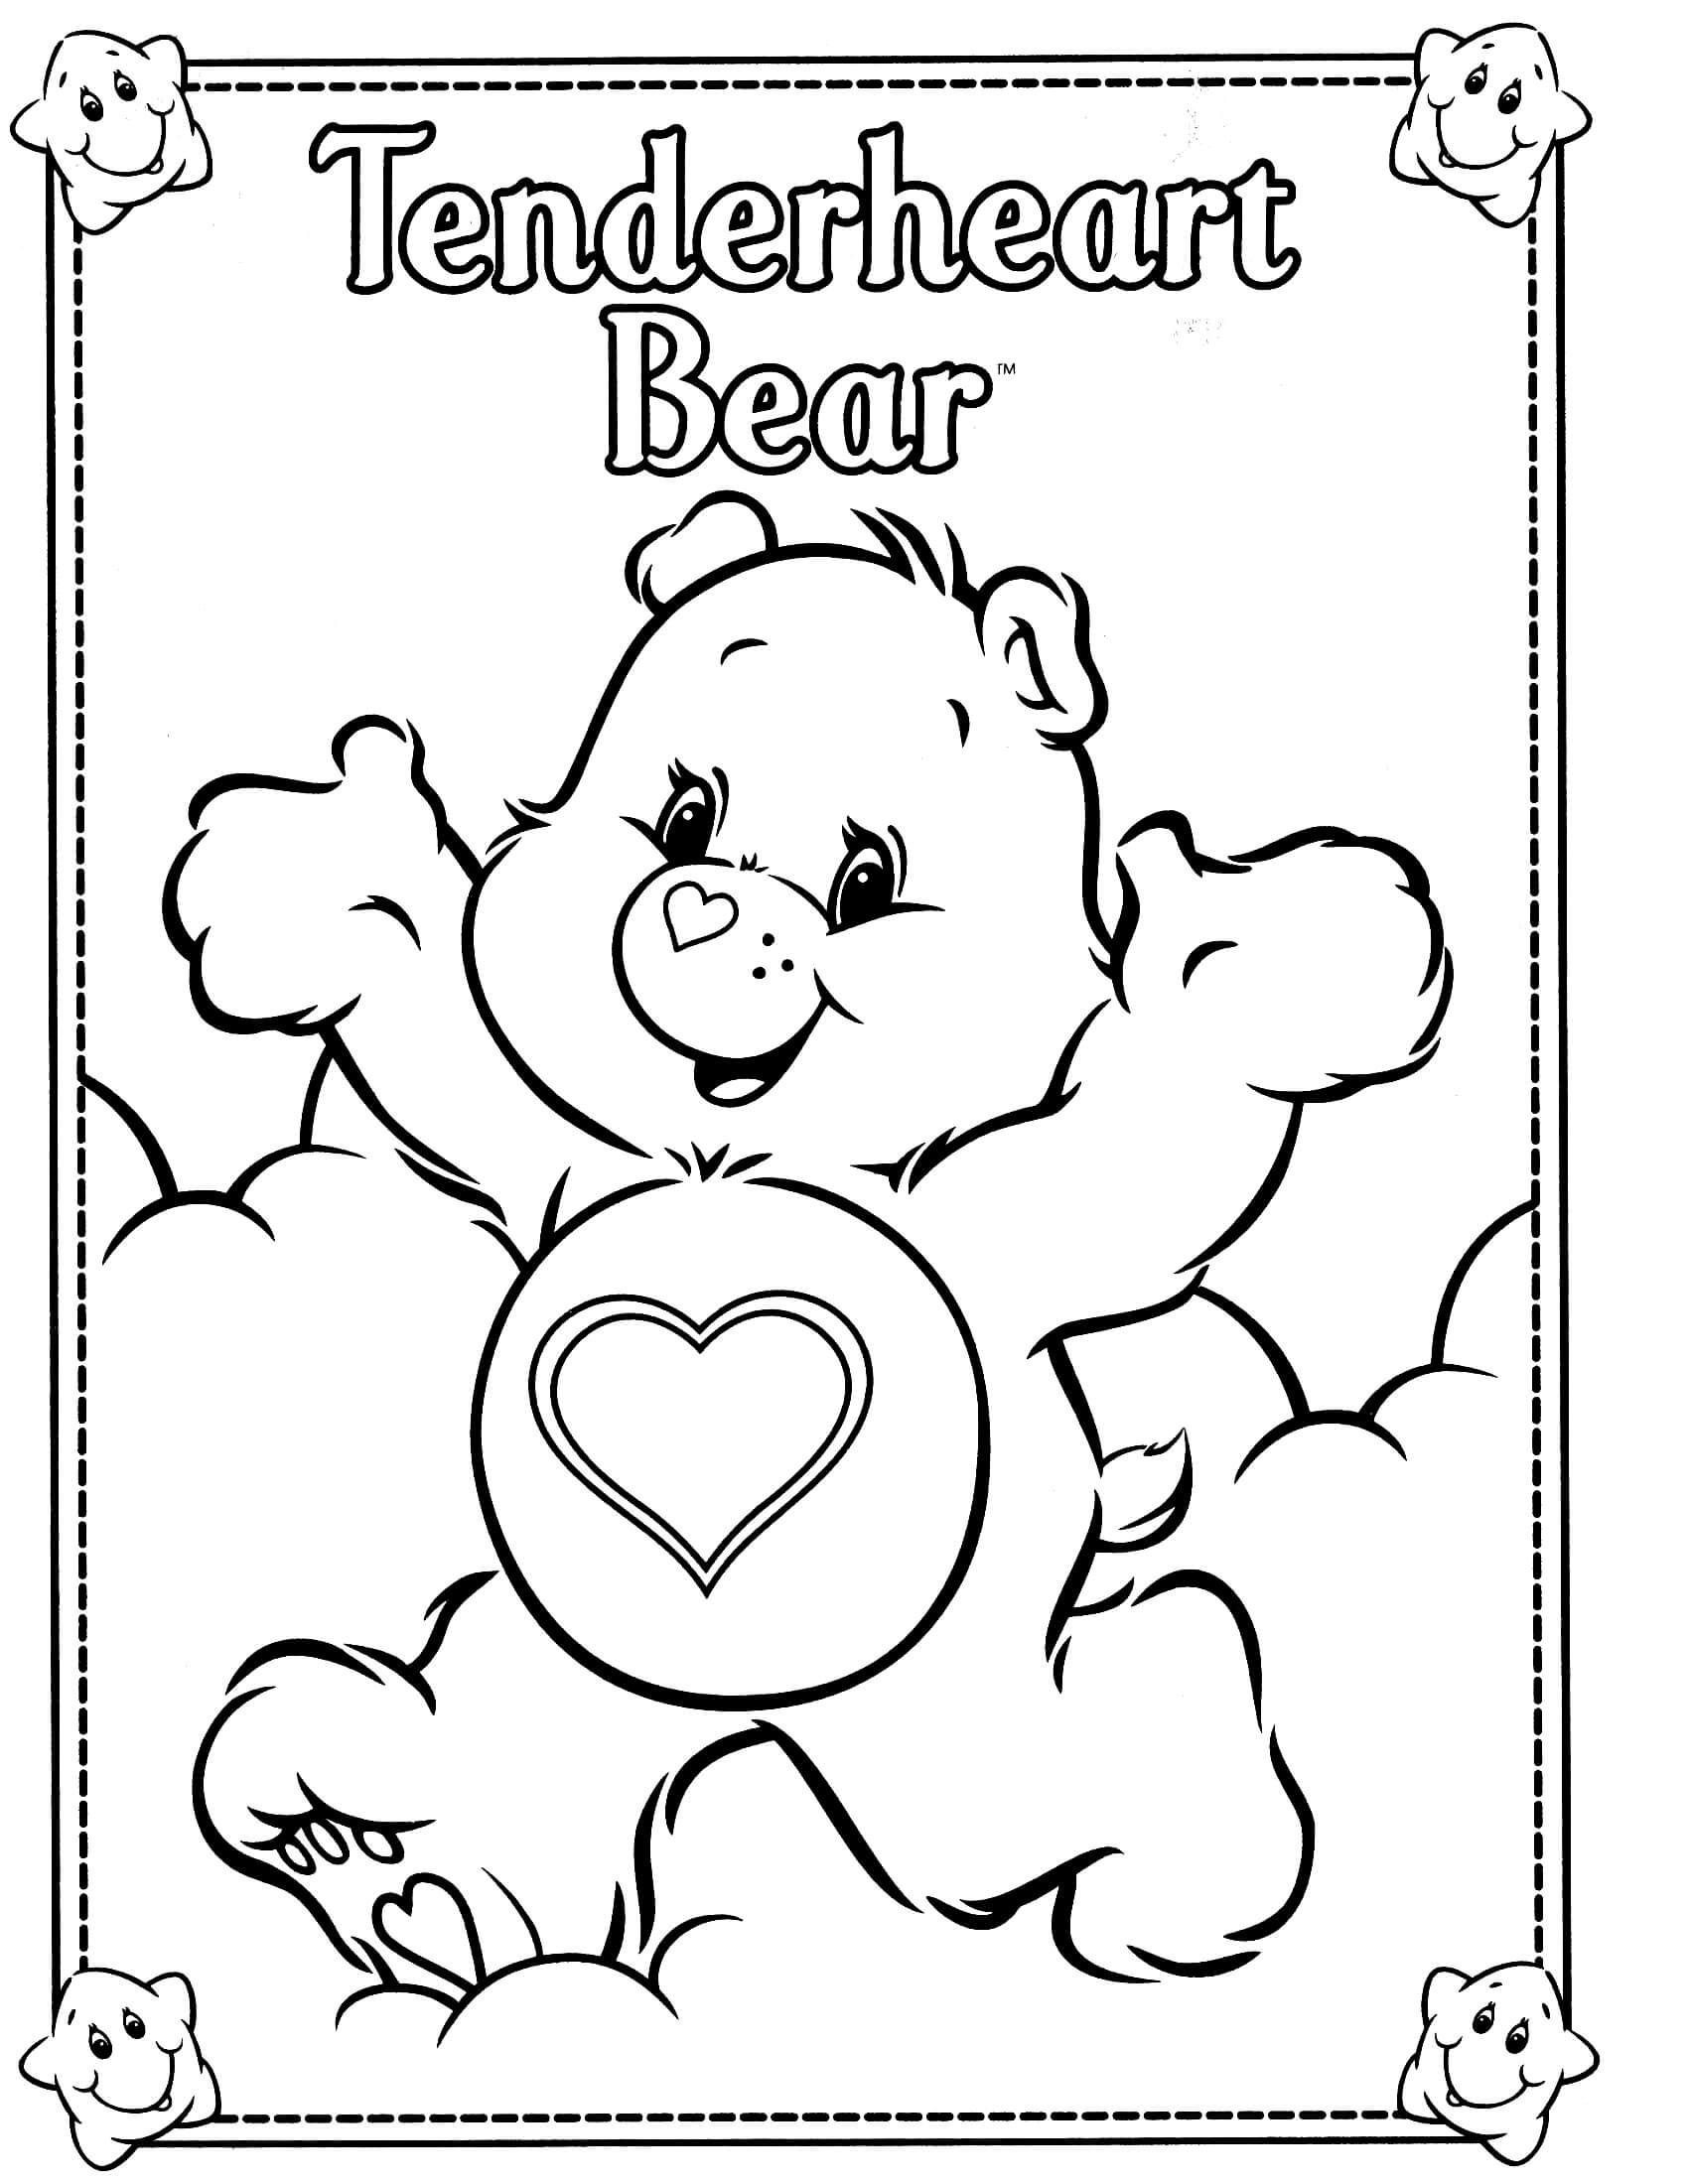 Care Bears Coloring Page Bear Coloring Pages Teddy Bear Coloring Pages Cartoon Coloring Pages